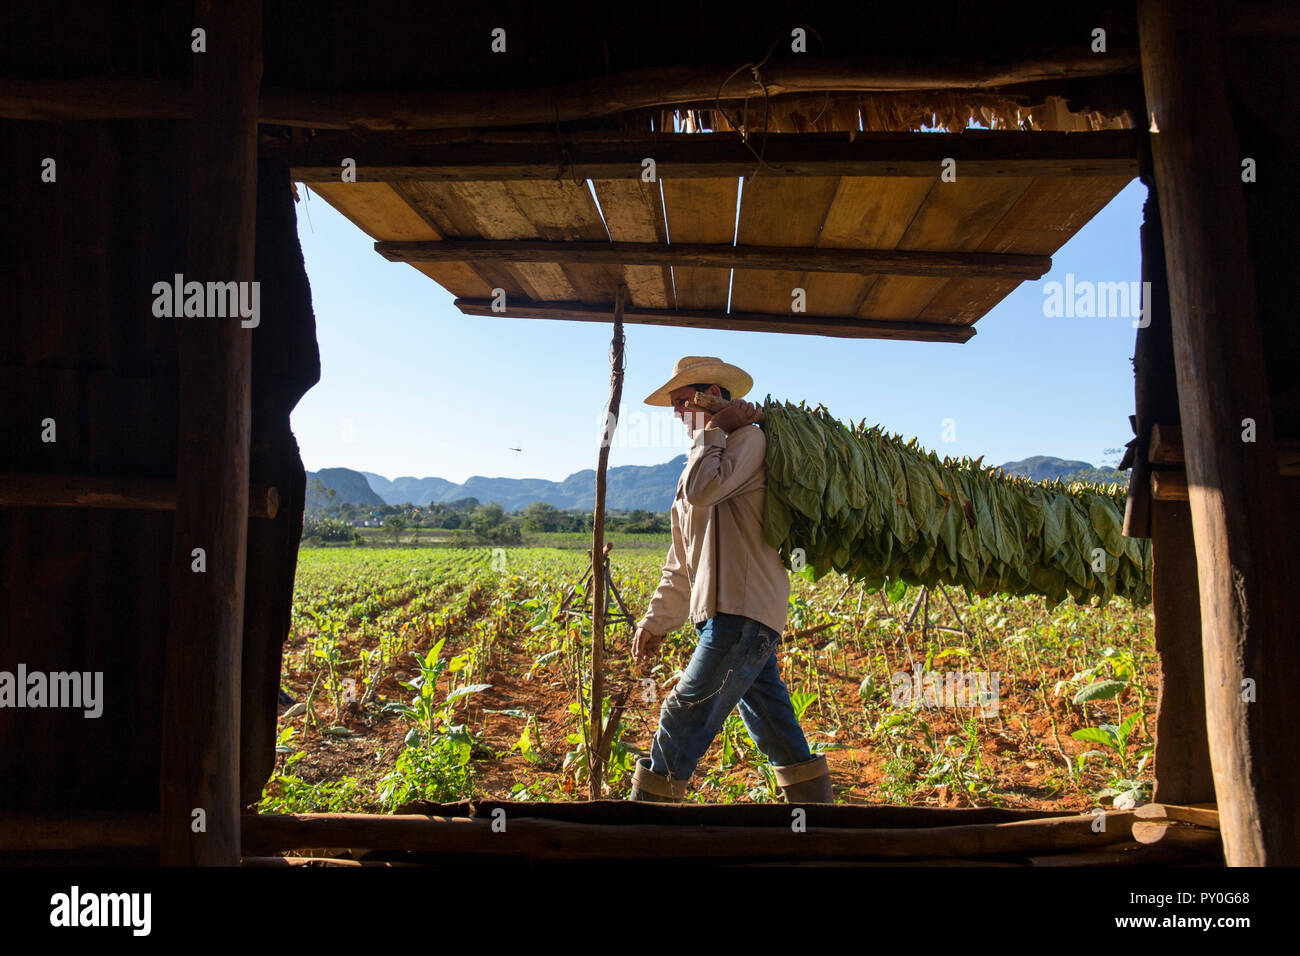 Man carrying tobacco leaves seen through open window of simple cottage, Vinales, Pinar del Rio Province, Cuba - Stock Image